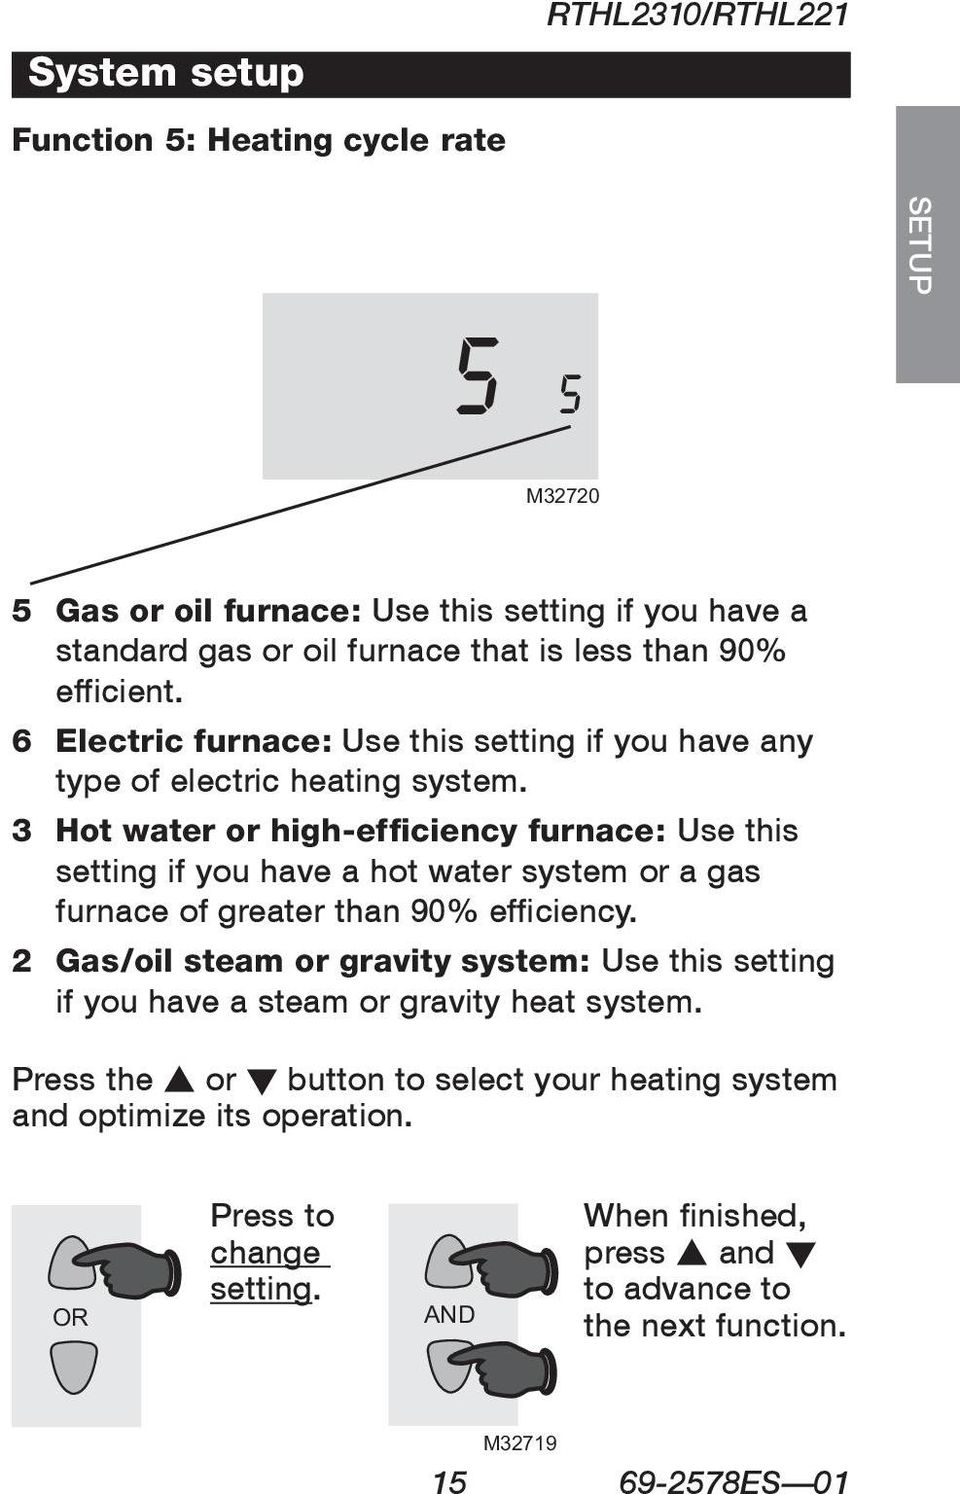 3 Hot water or high-efficiency furnace: Use this setting if you have a hot water system or a gas furnace of greater than 90% efficiency.